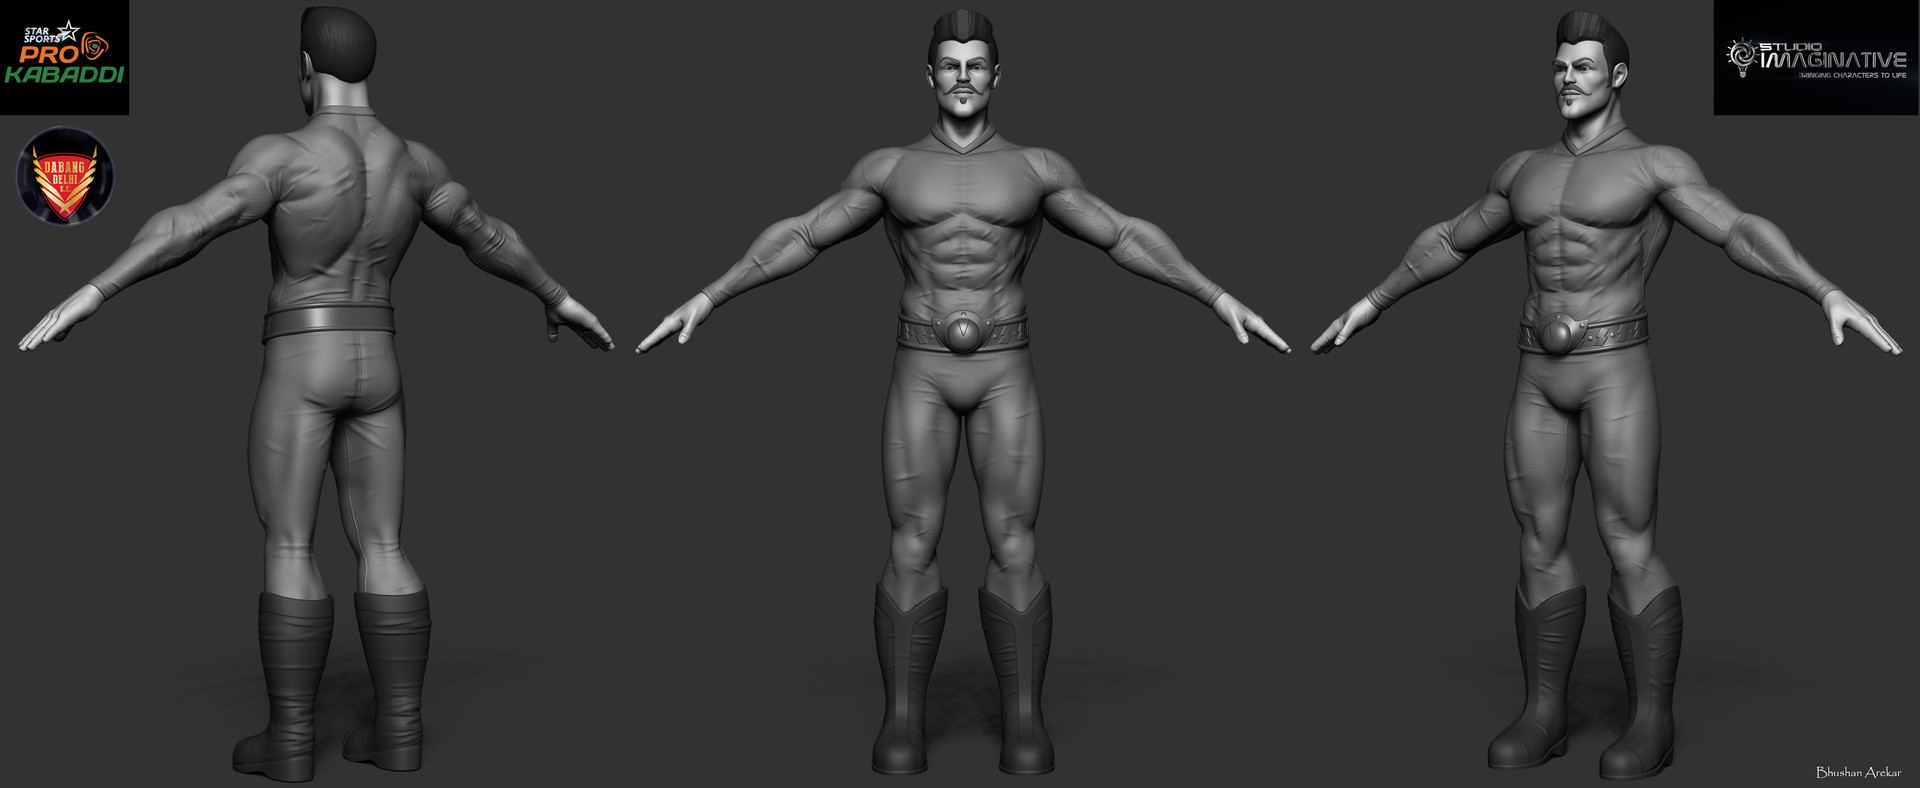 Mid level model provided,responsible for sculpting,UV/Bake and first stage texturing.